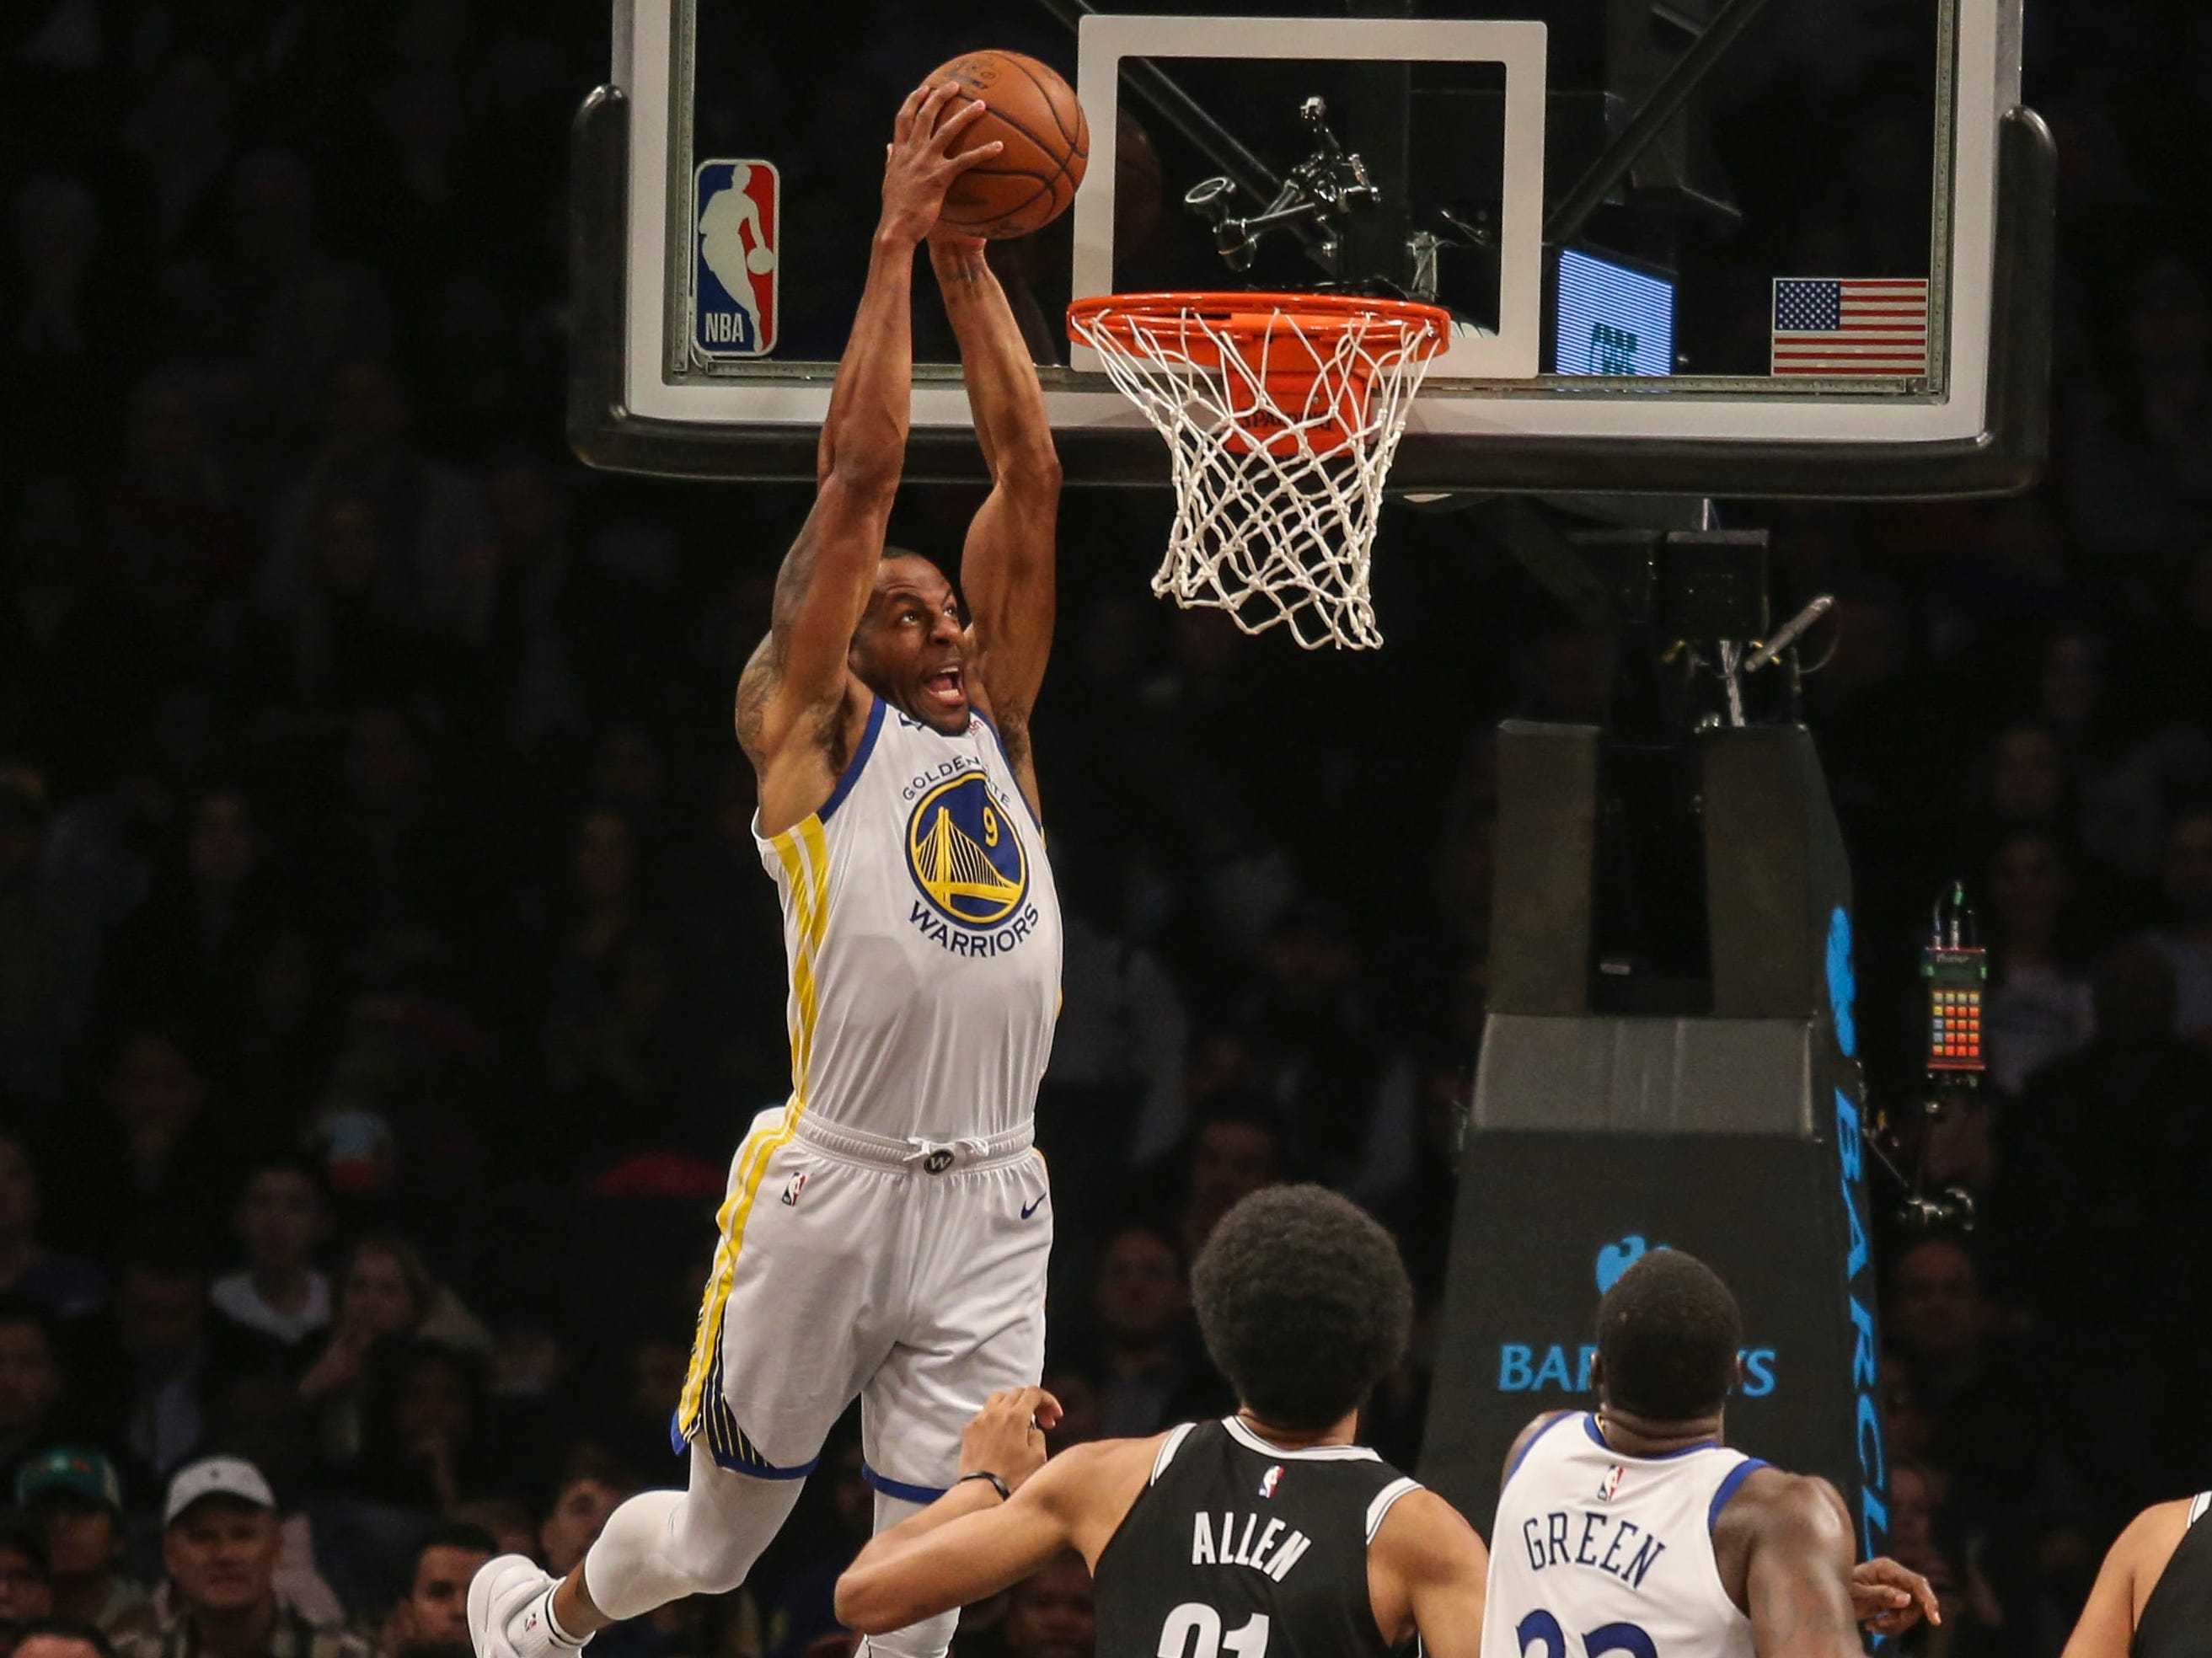 Oct. 28: Warriors forward Andre Iguodala throws down a two-handed slam against the Nets in Brooklyn.